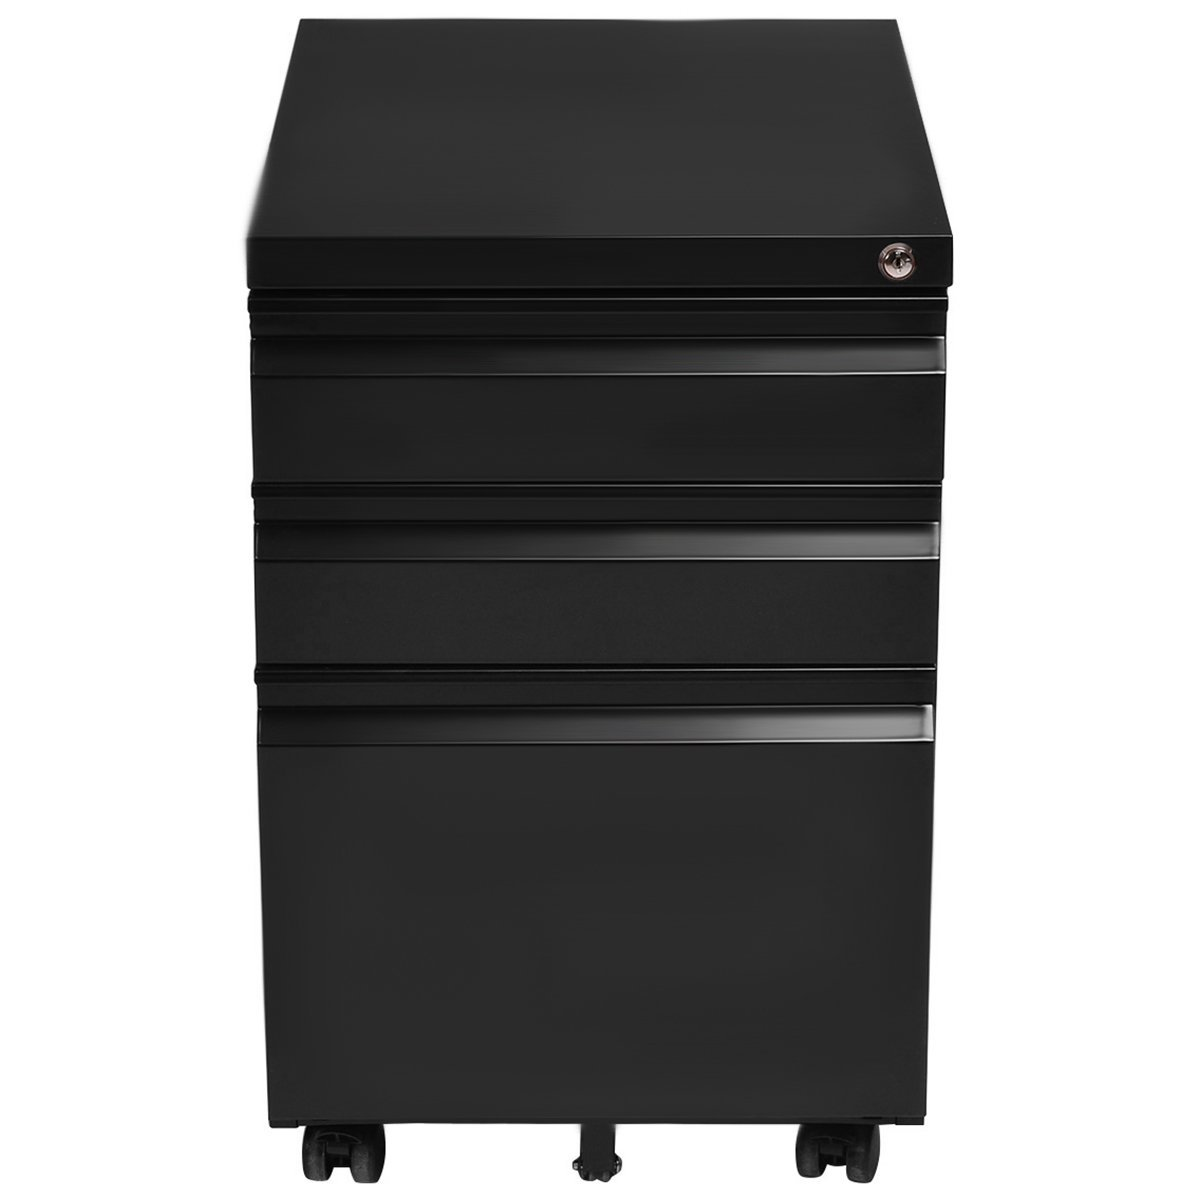 Giantex Rolling Mobile File W/3 Lockable Drawers and Pedestal for Office Study Room Home Steel Storage Cabinet by Giantex (Image #4)